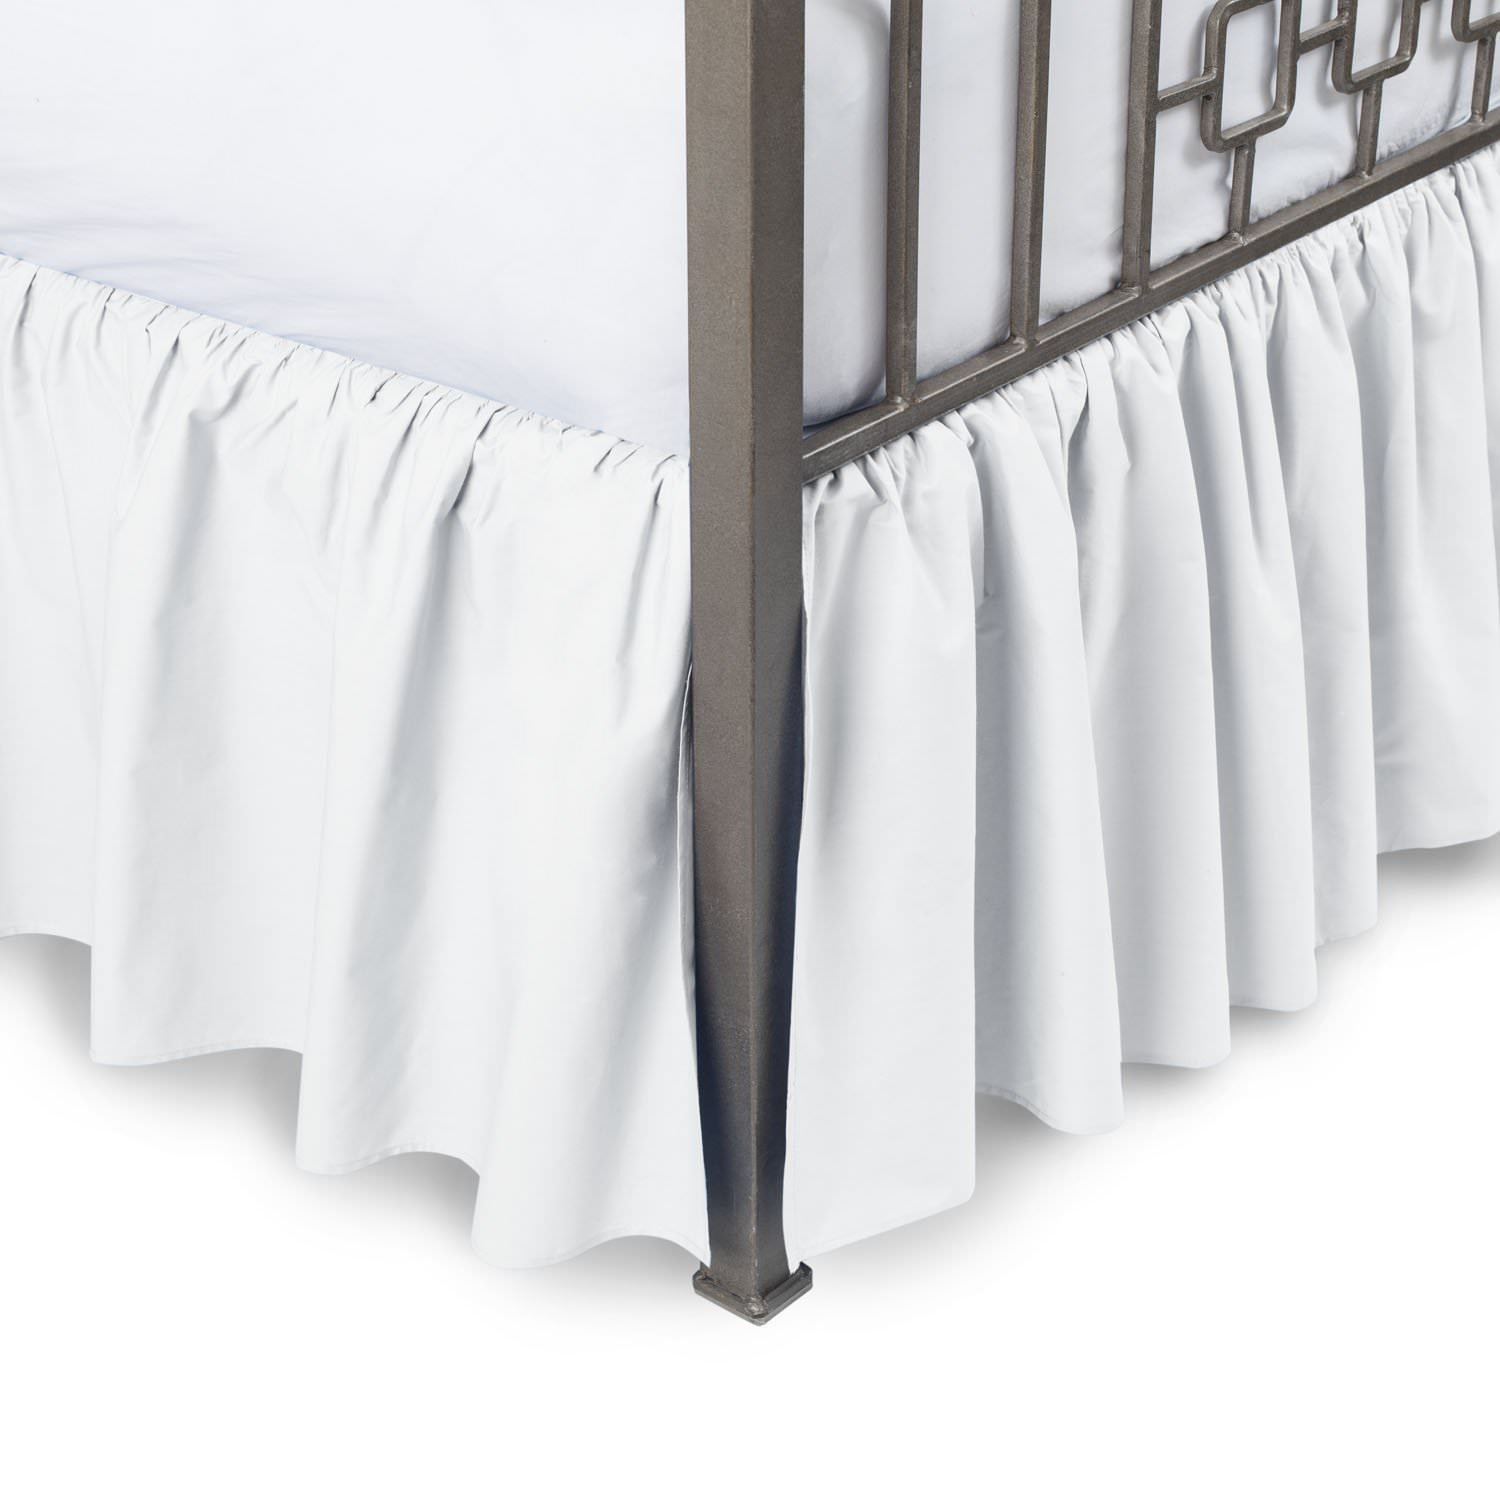 Hotel Quality 650TC Single Ply Egyptian cotton RV King Size 1pc Split Corner Dust Ruffle Bed Skirt With 23 Inch Drop Length, White Solid